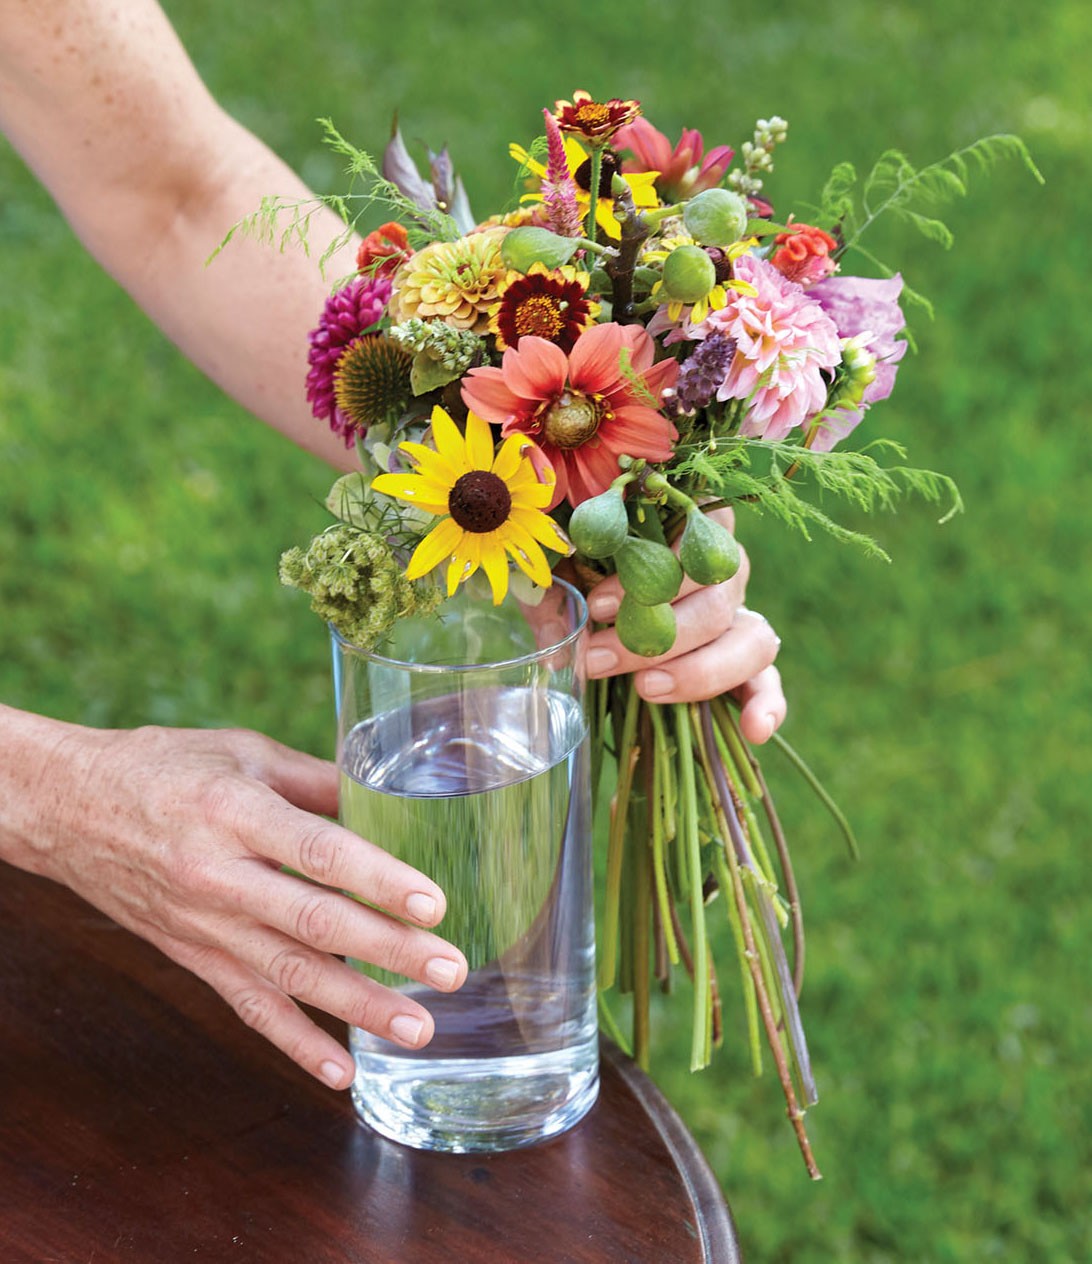 Kappi Naftel holds her bouquet against a glass to judge stem length. The bind point is near the top of the vessel.